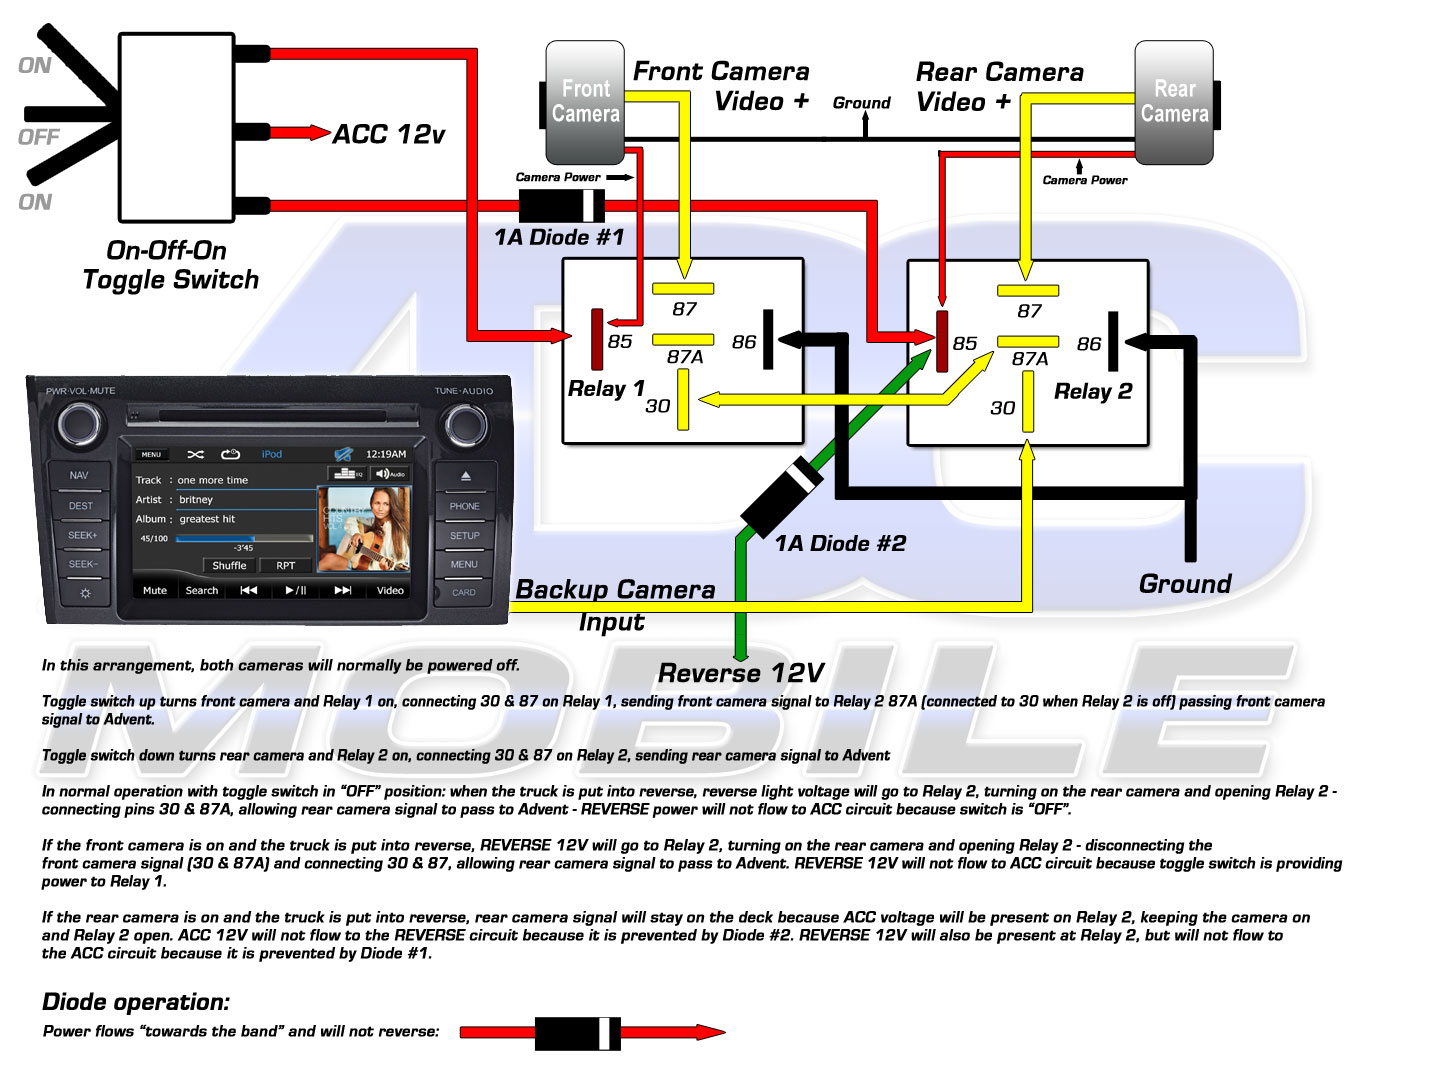 Toyota Tundra Trailer Wiring Diagram 36 Images Front Rear Camera Relays1 How To Relocate Plug Into Bumper At Cita